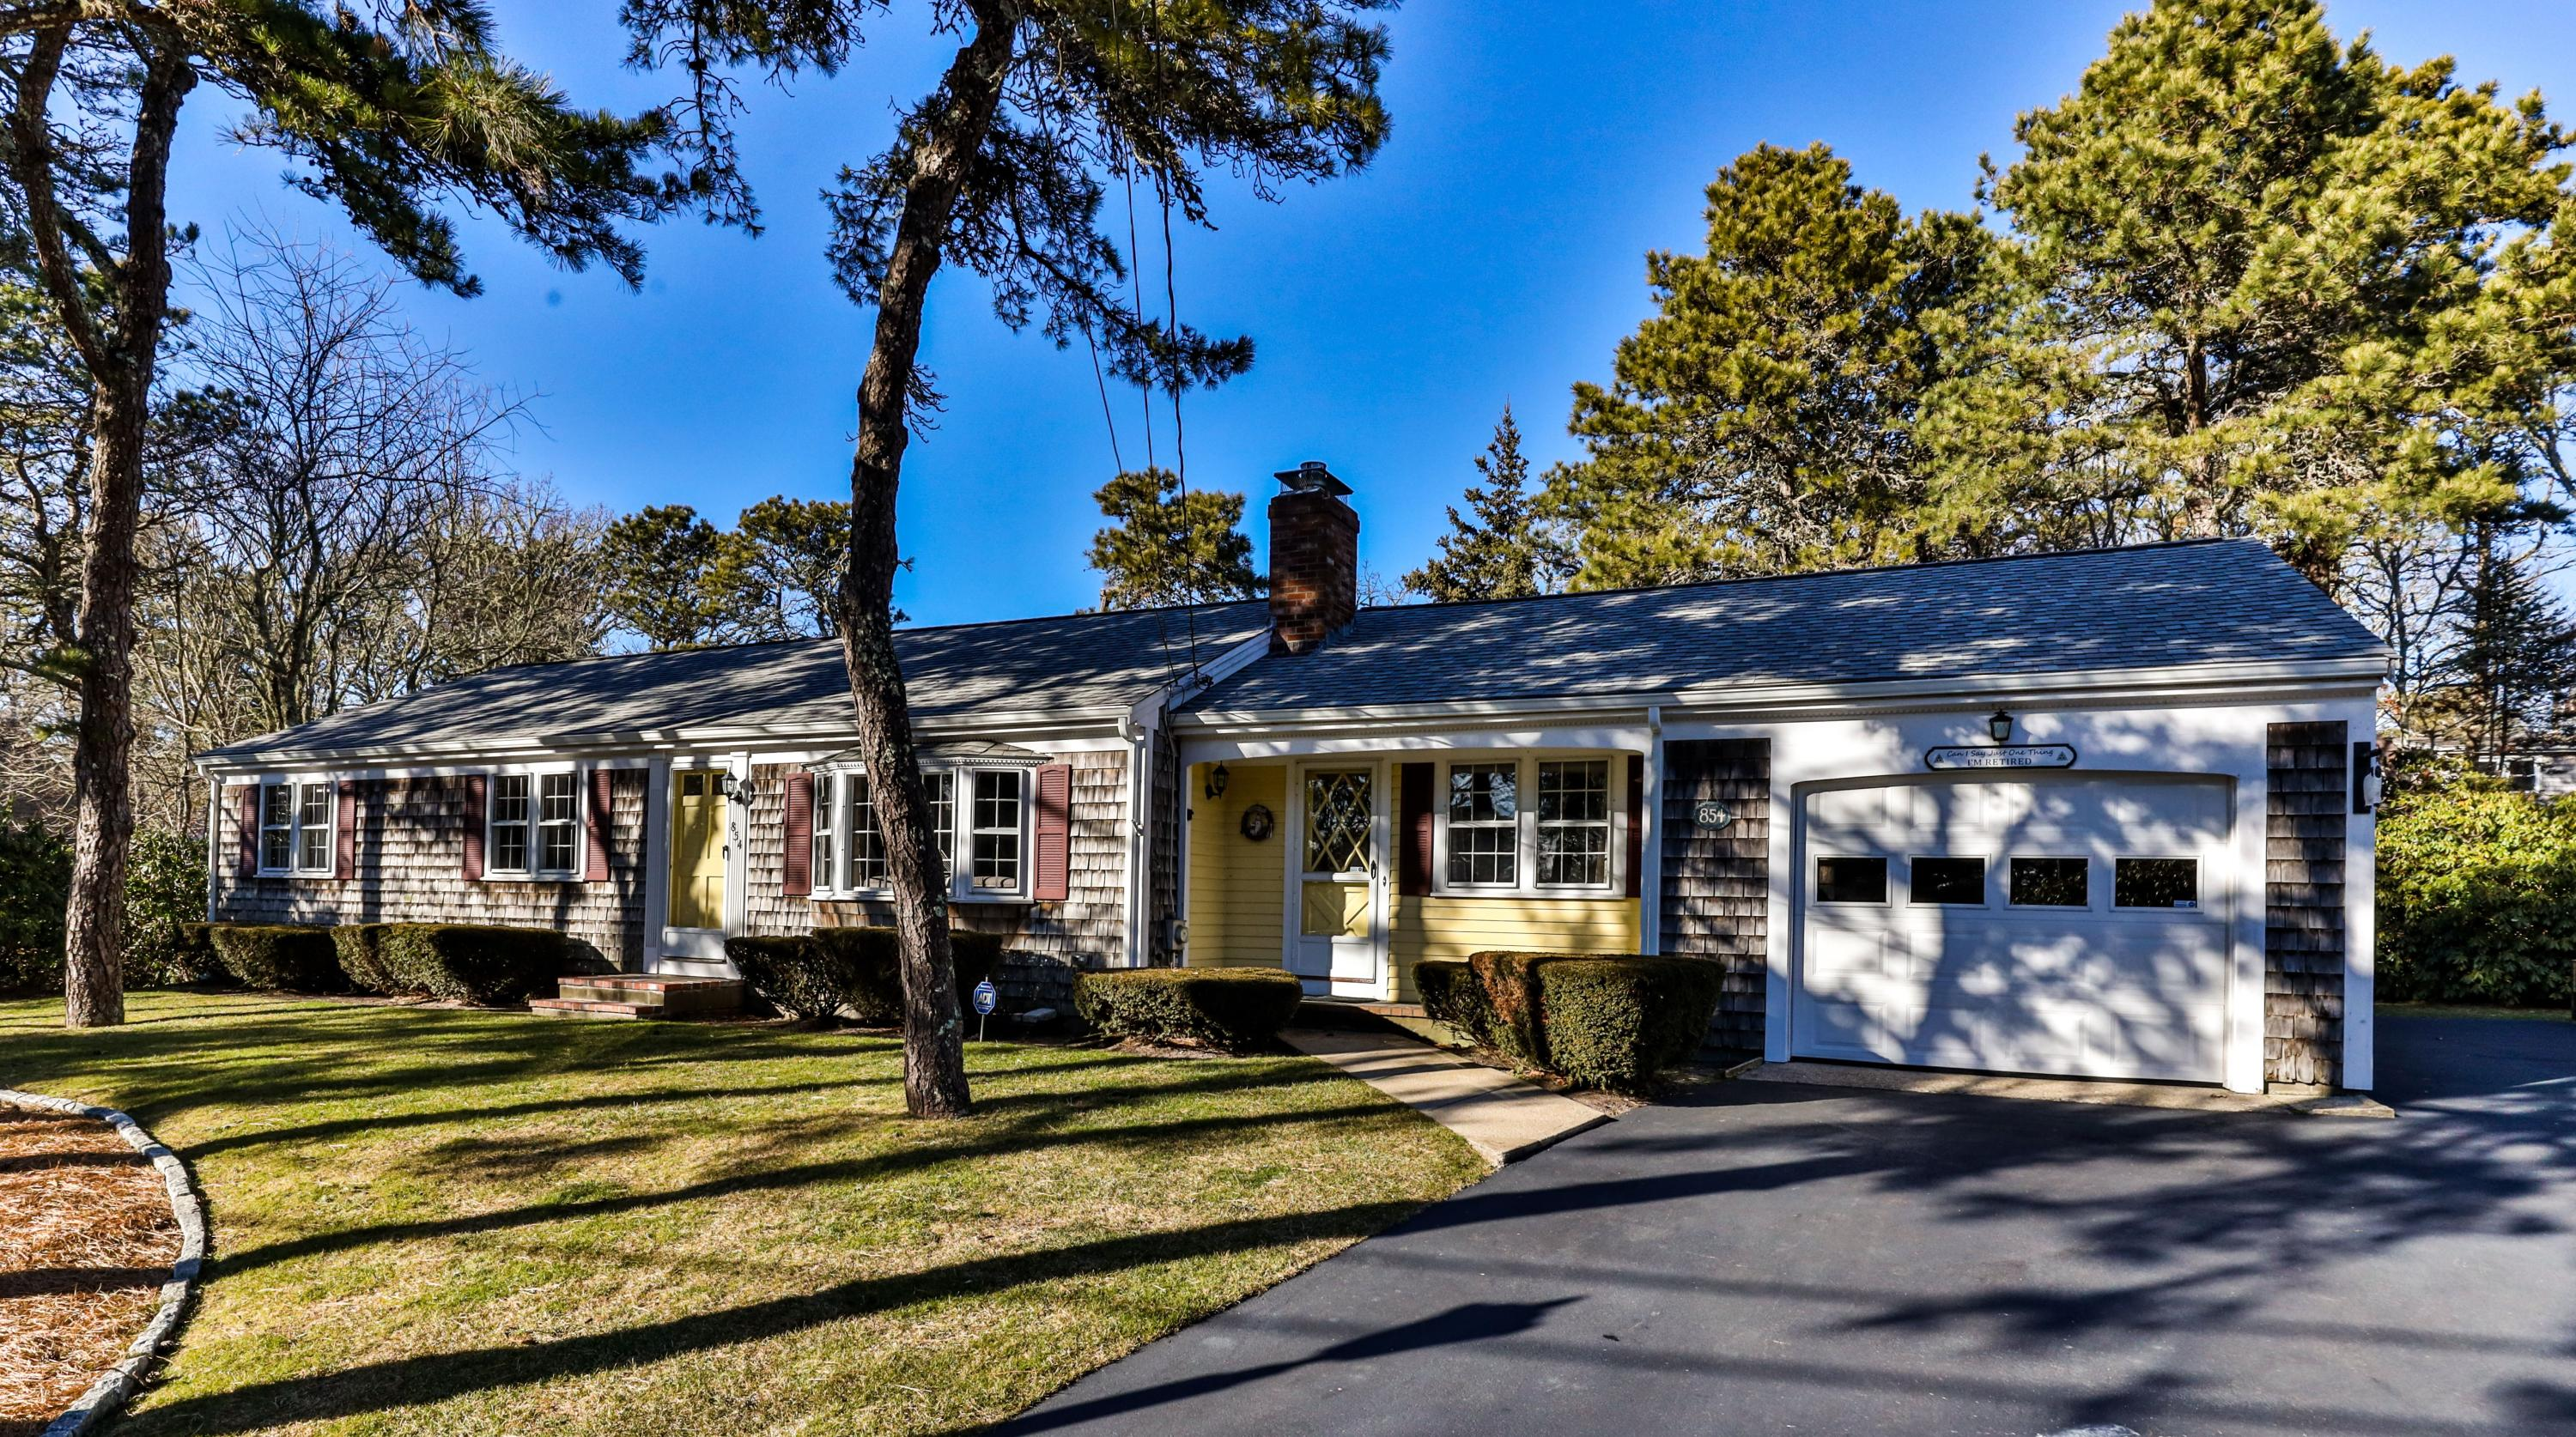 854 Queen Anne Road, Harwich MA, 02645 details